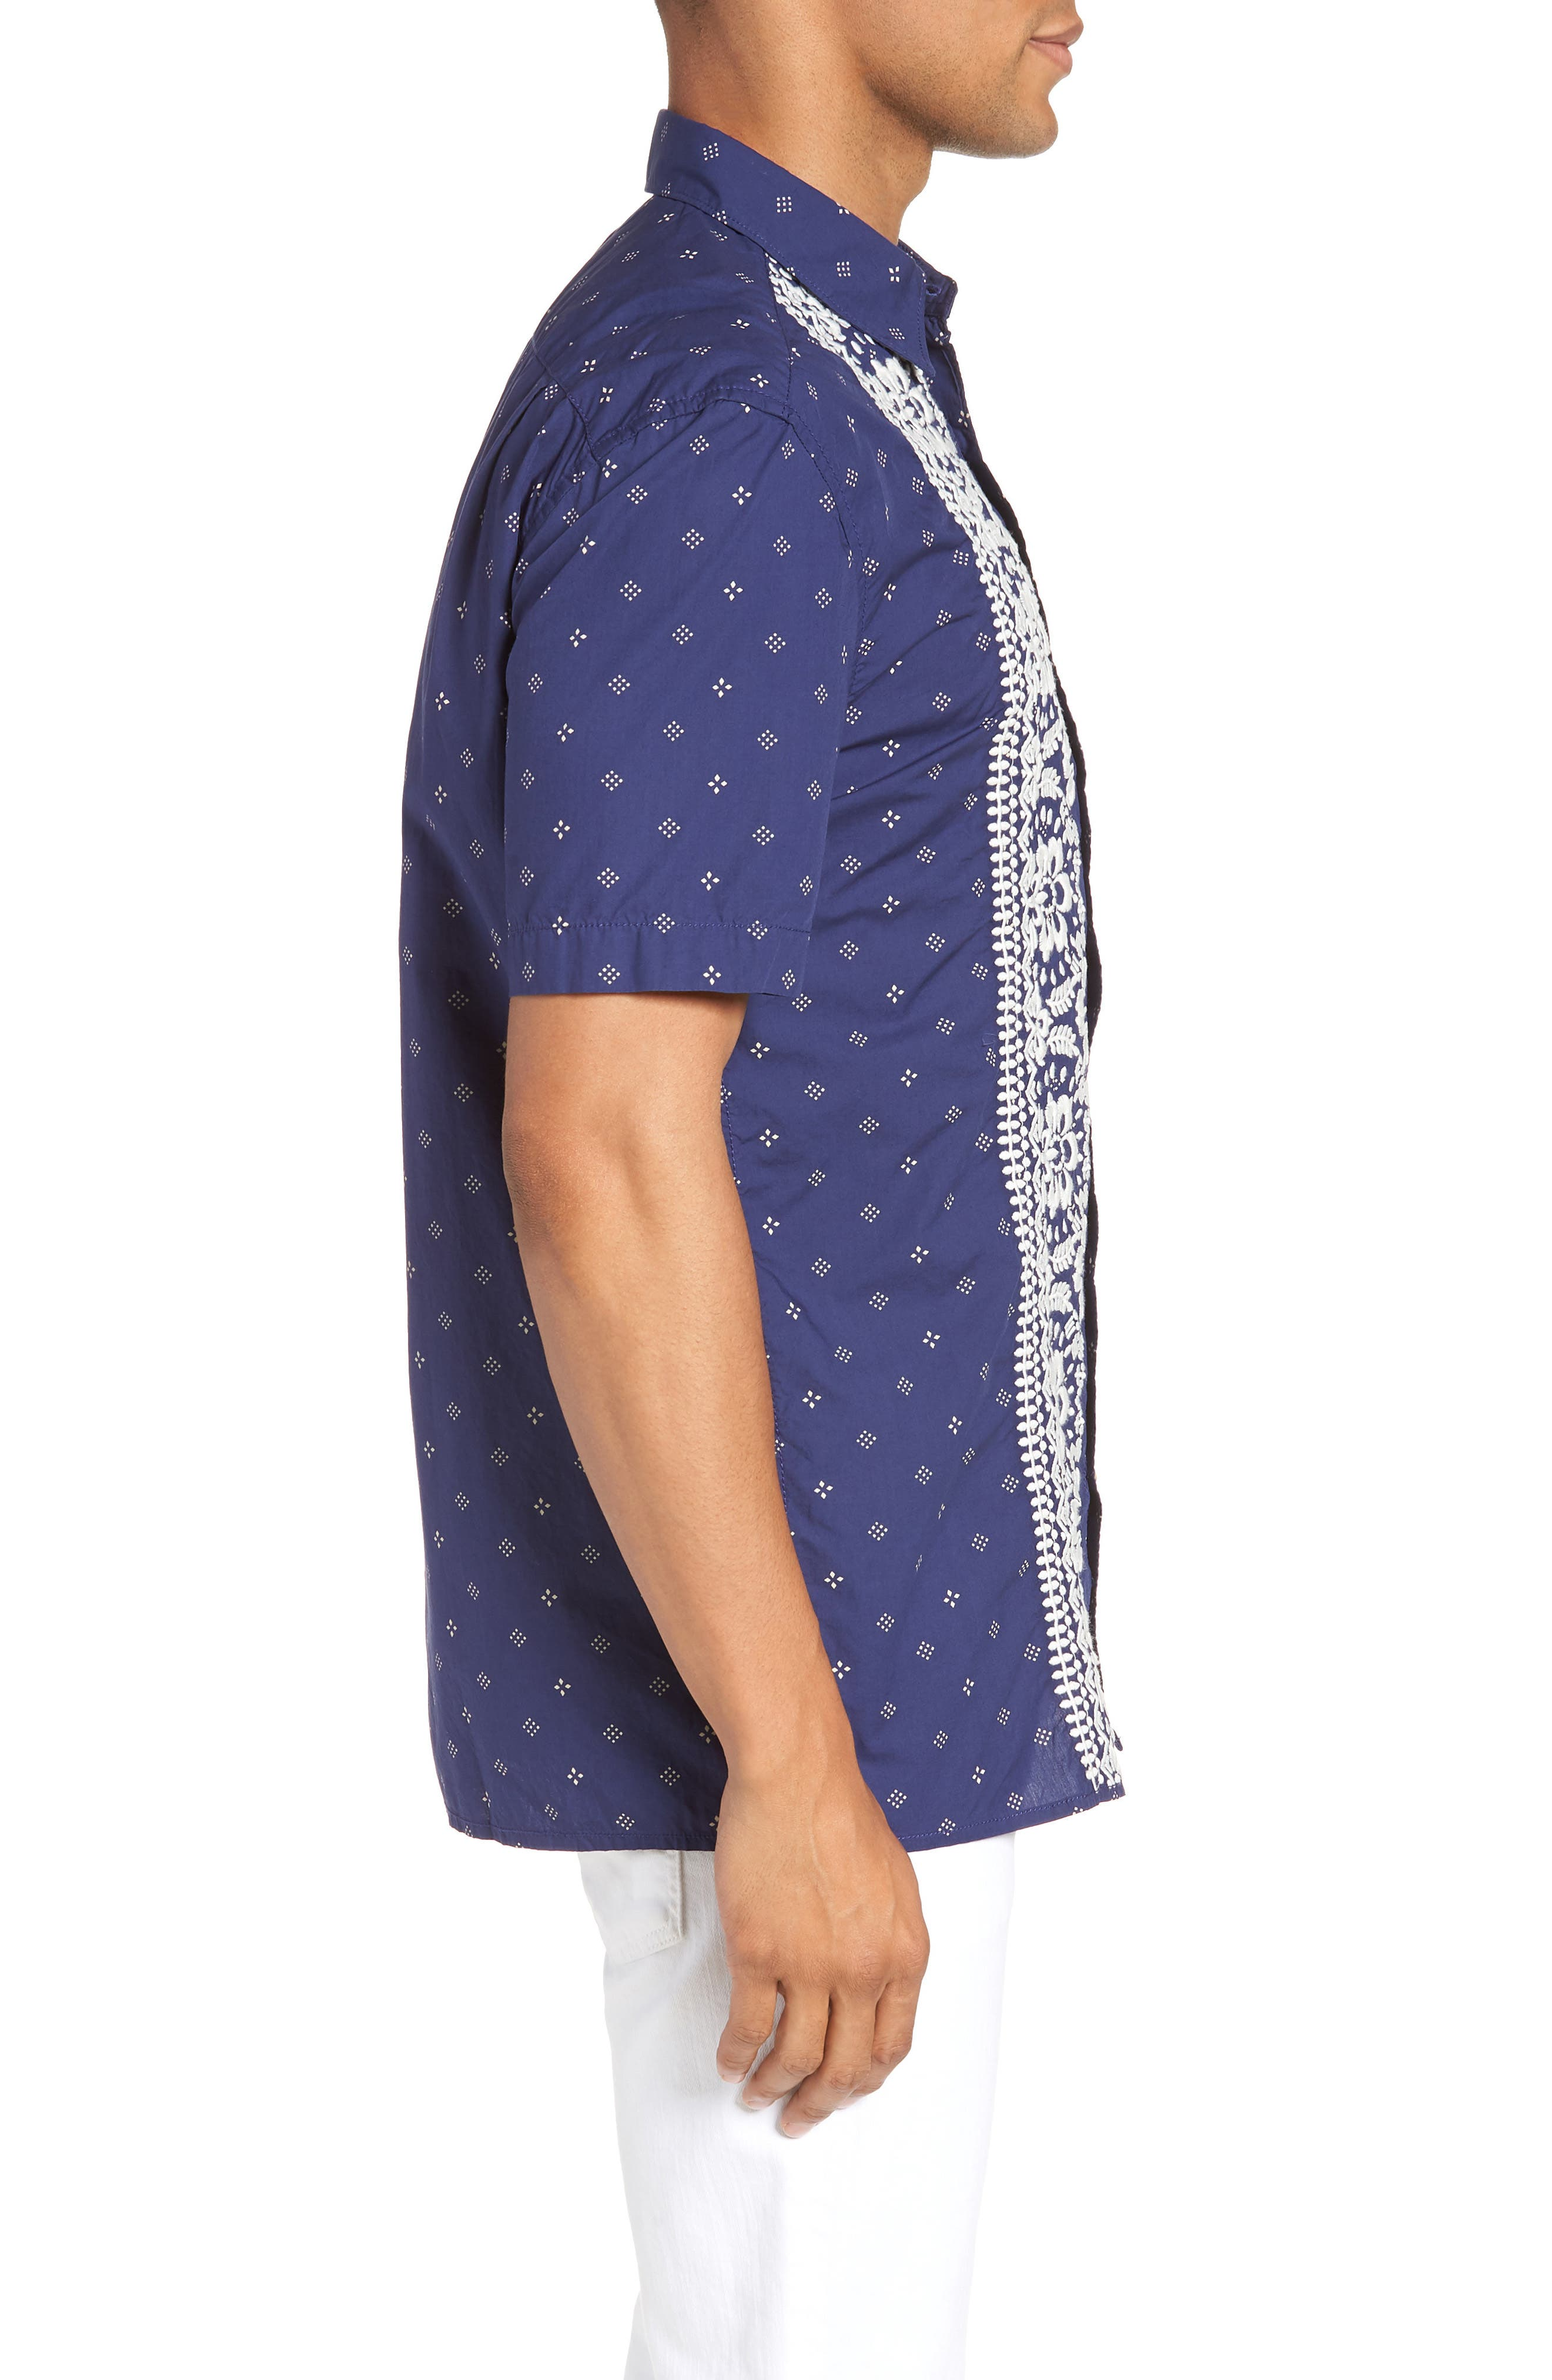 Iki Lawn Embroidered Shirt,                             Alternate thumbnail 3, color,                             PATRIOT BLUE TURTLE DOVE